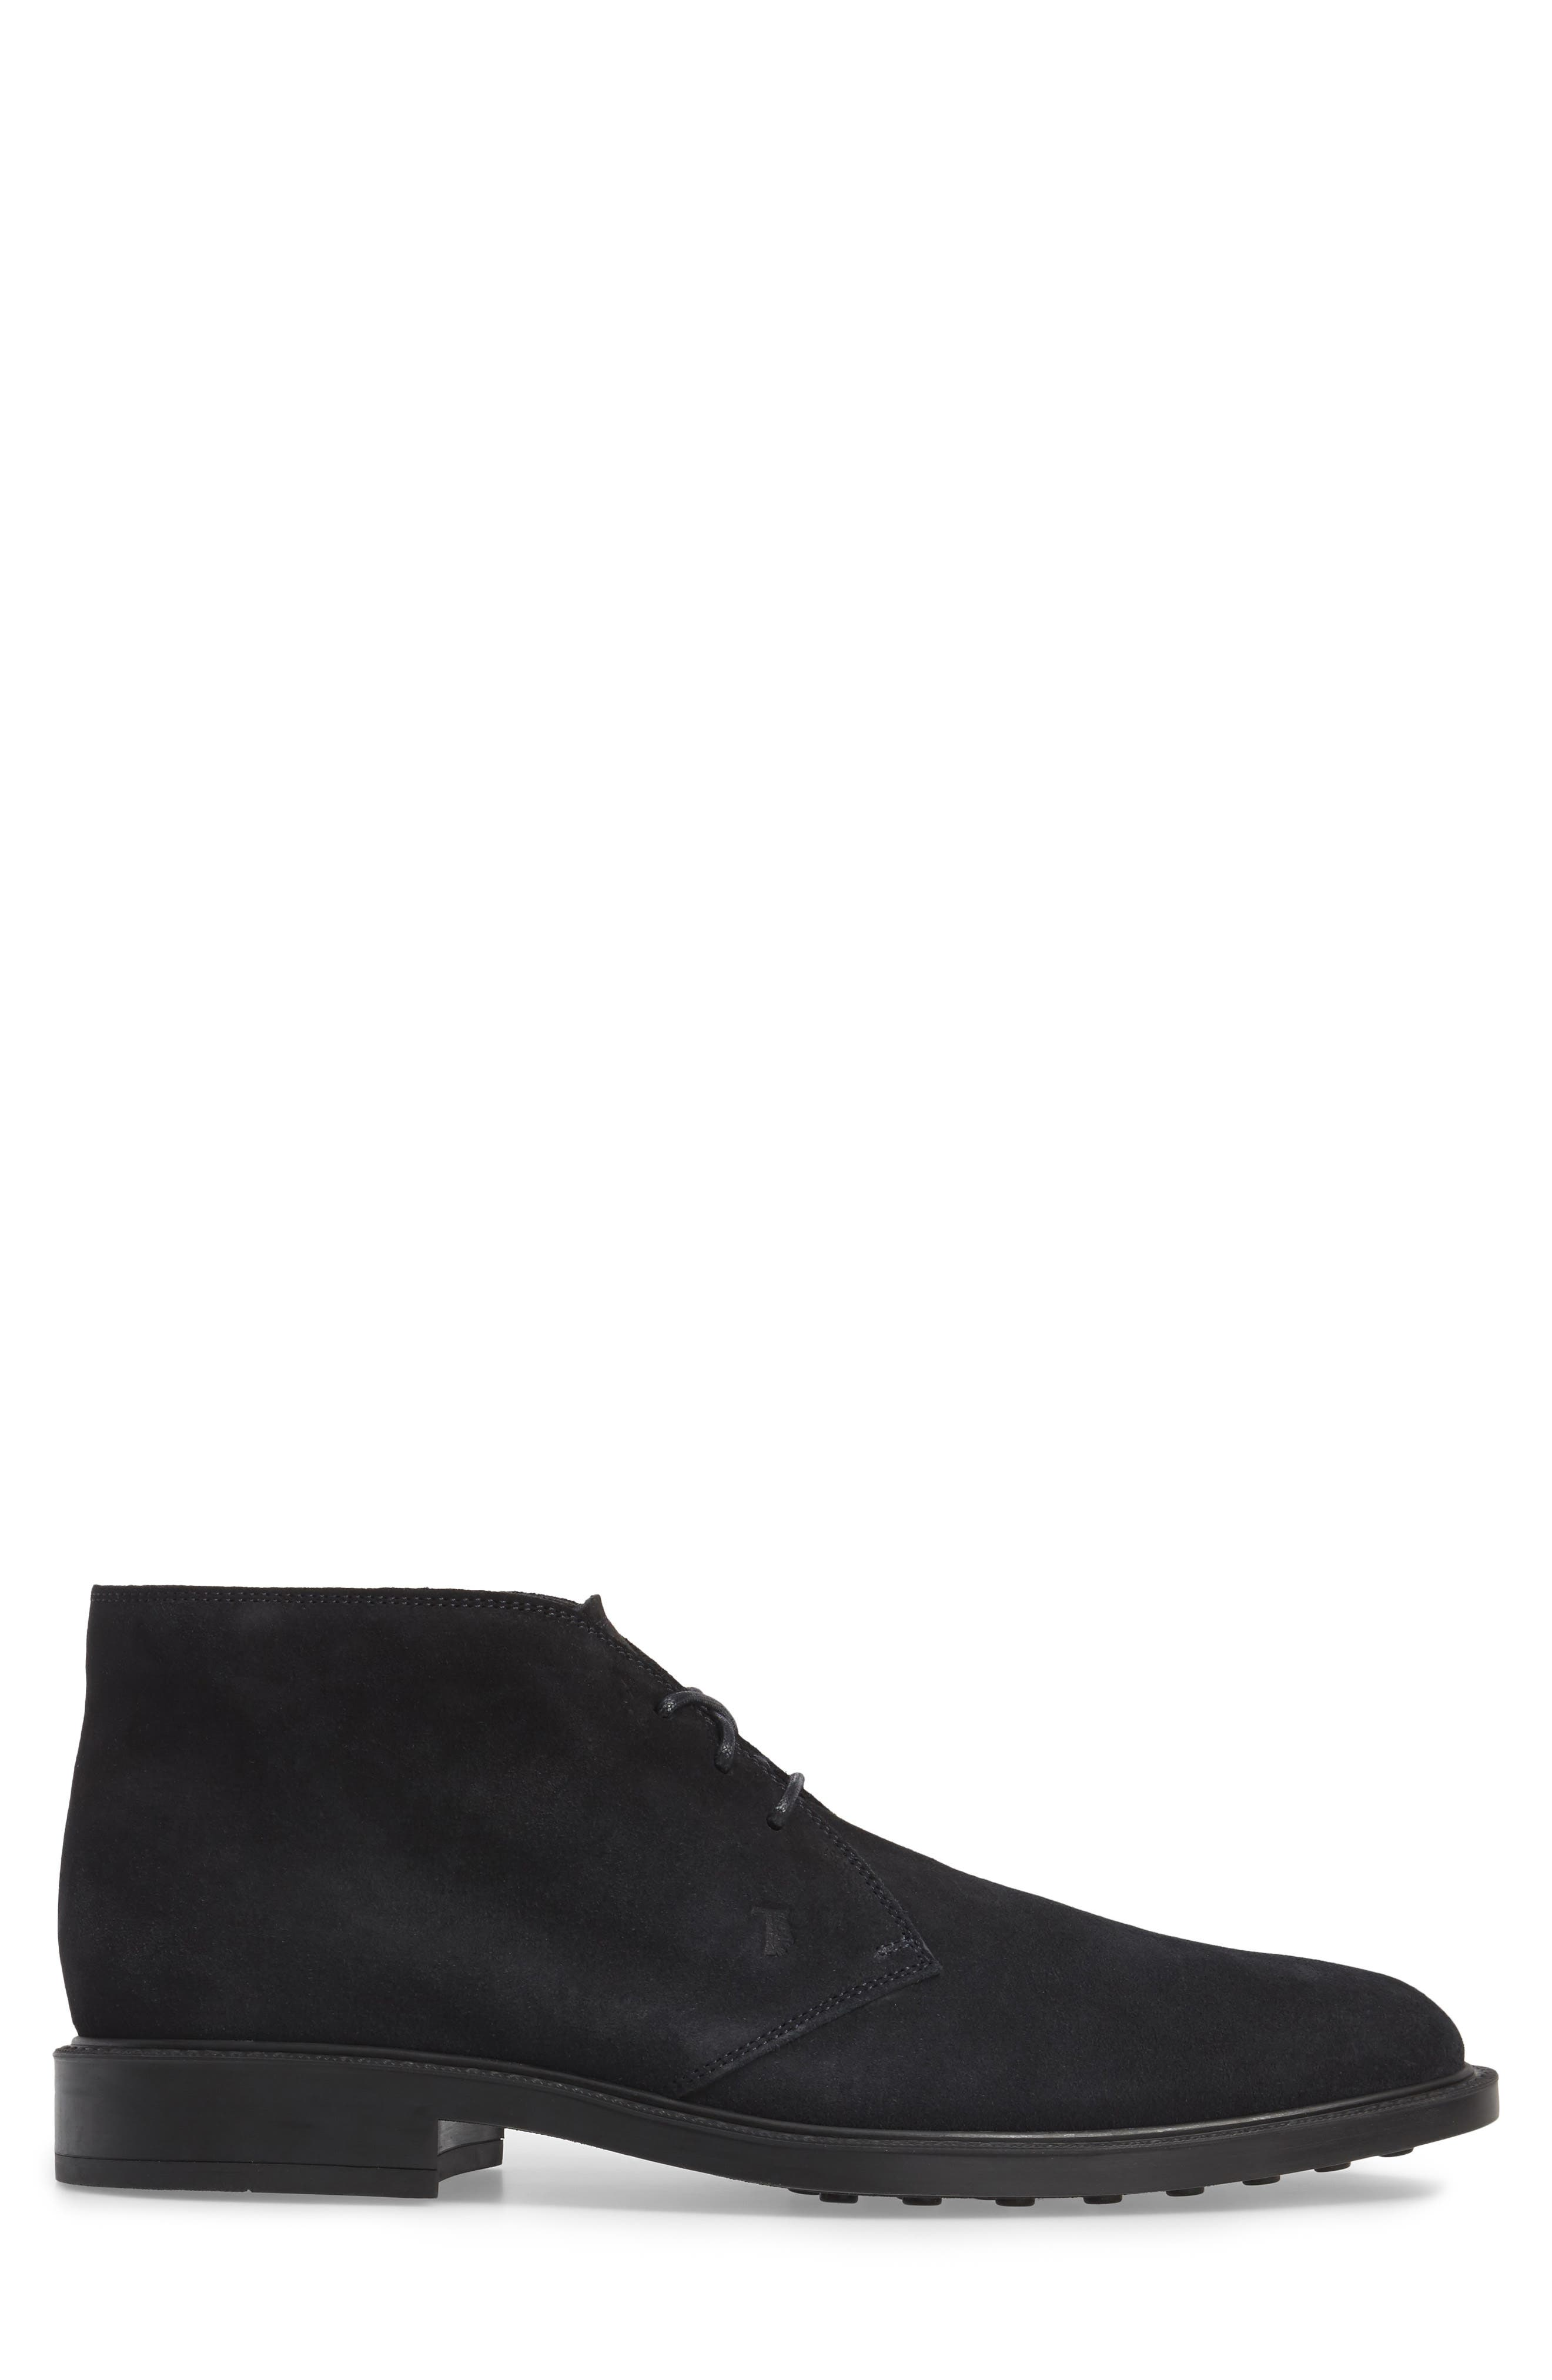 TOD'S,                             'Polacco' Chukka Boot,                             Alternate thumbnail 3, color,                             NAVY SUEDE